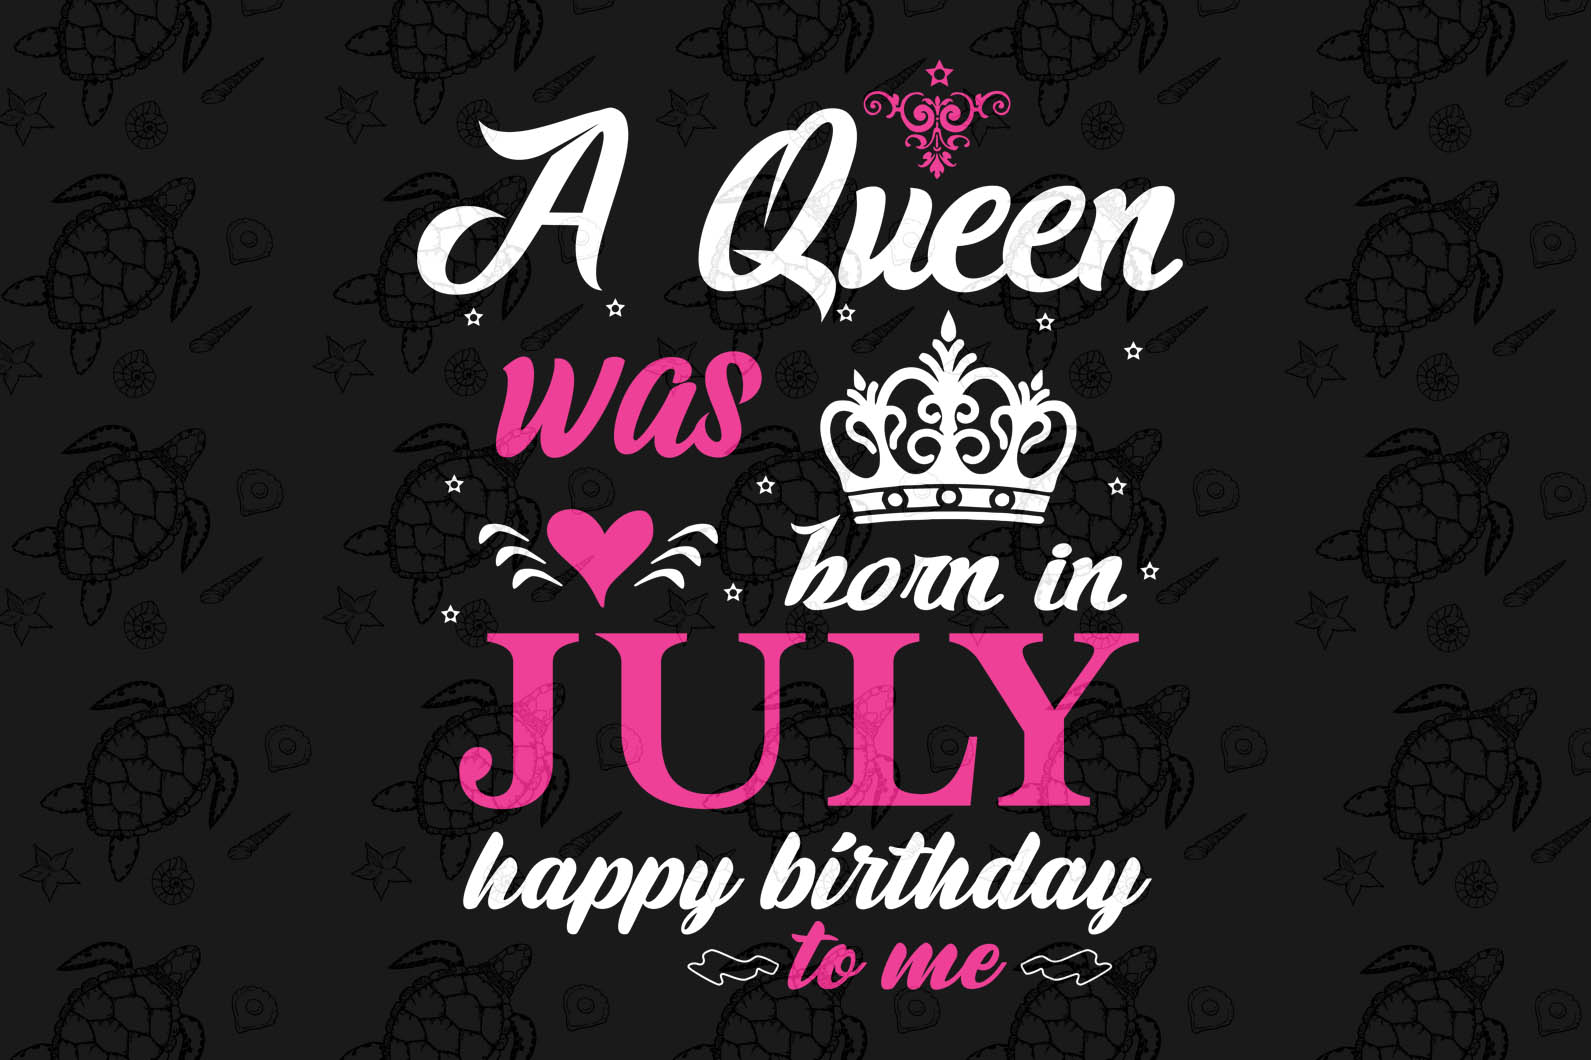 A queen was born in July, retro vintage shirt, born in July, July svg, July birthday, July birthday gift, birthday shirt, queen svg, girl gift, girl shirt, svg cut files, svg clipart, silhouette svg, cricut svg files, decal and vinyl,